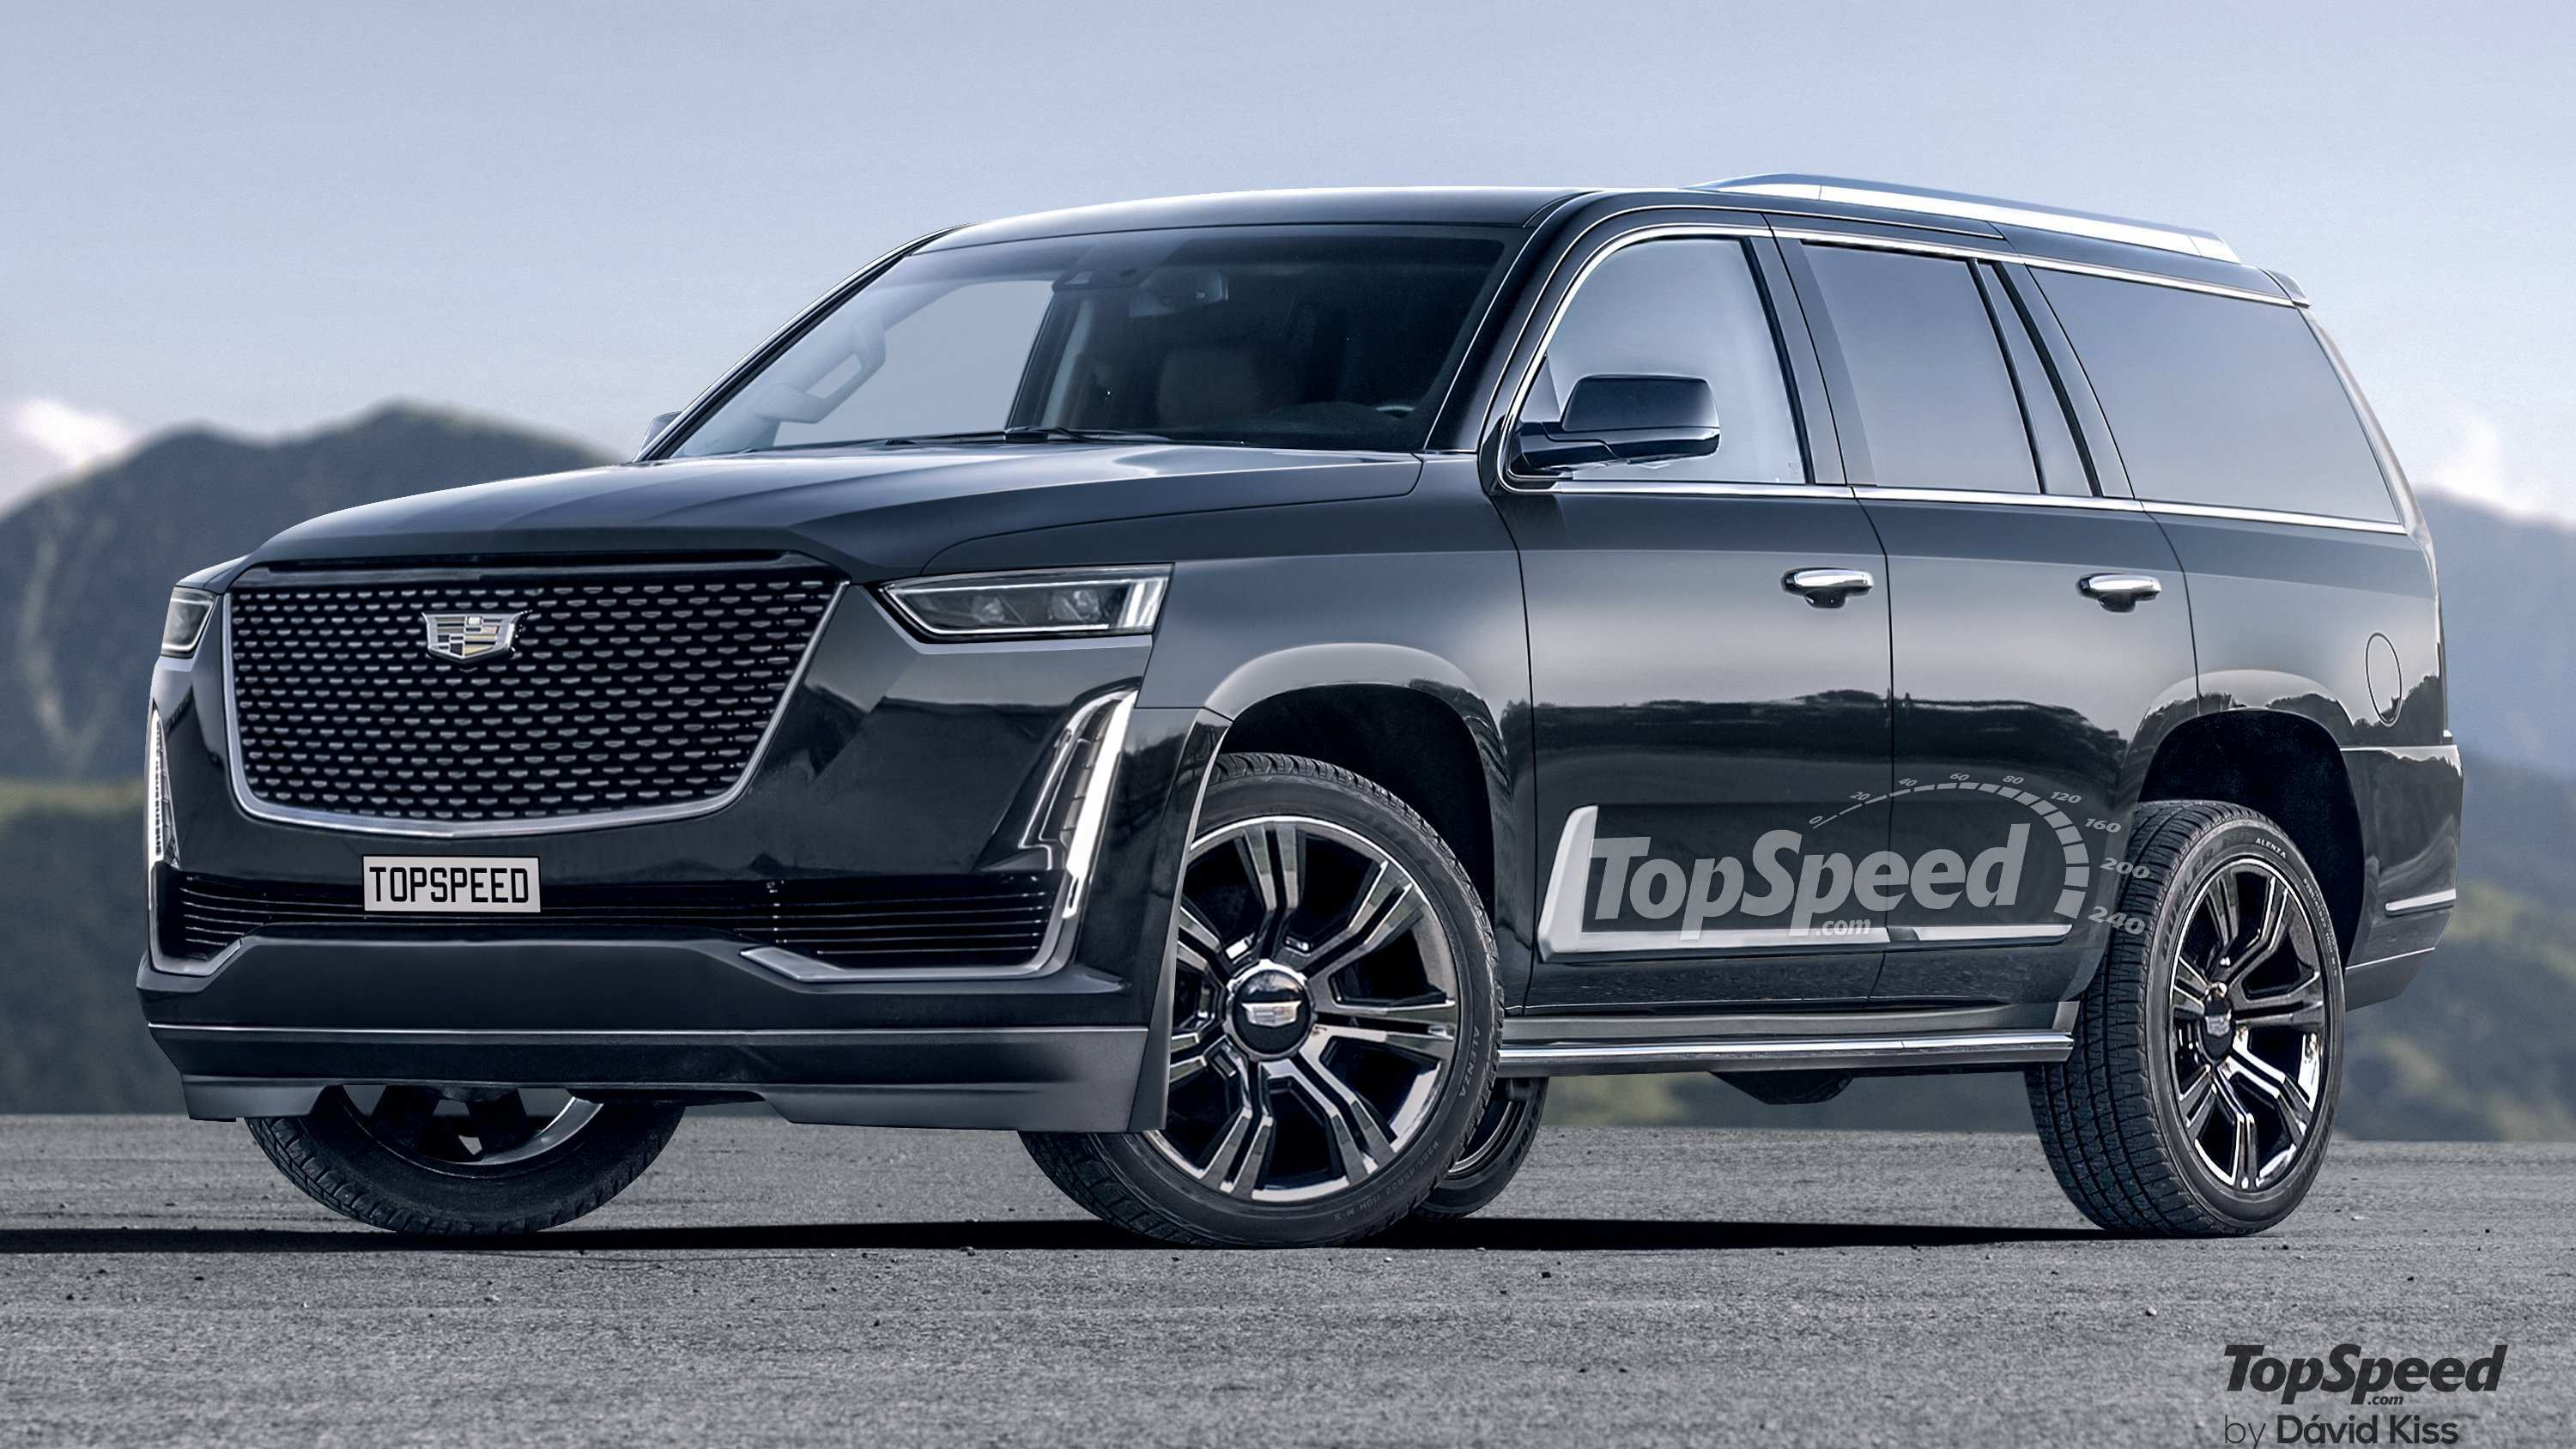 34 New 2020 Cadillac Escalade Luxury Suv New Concept